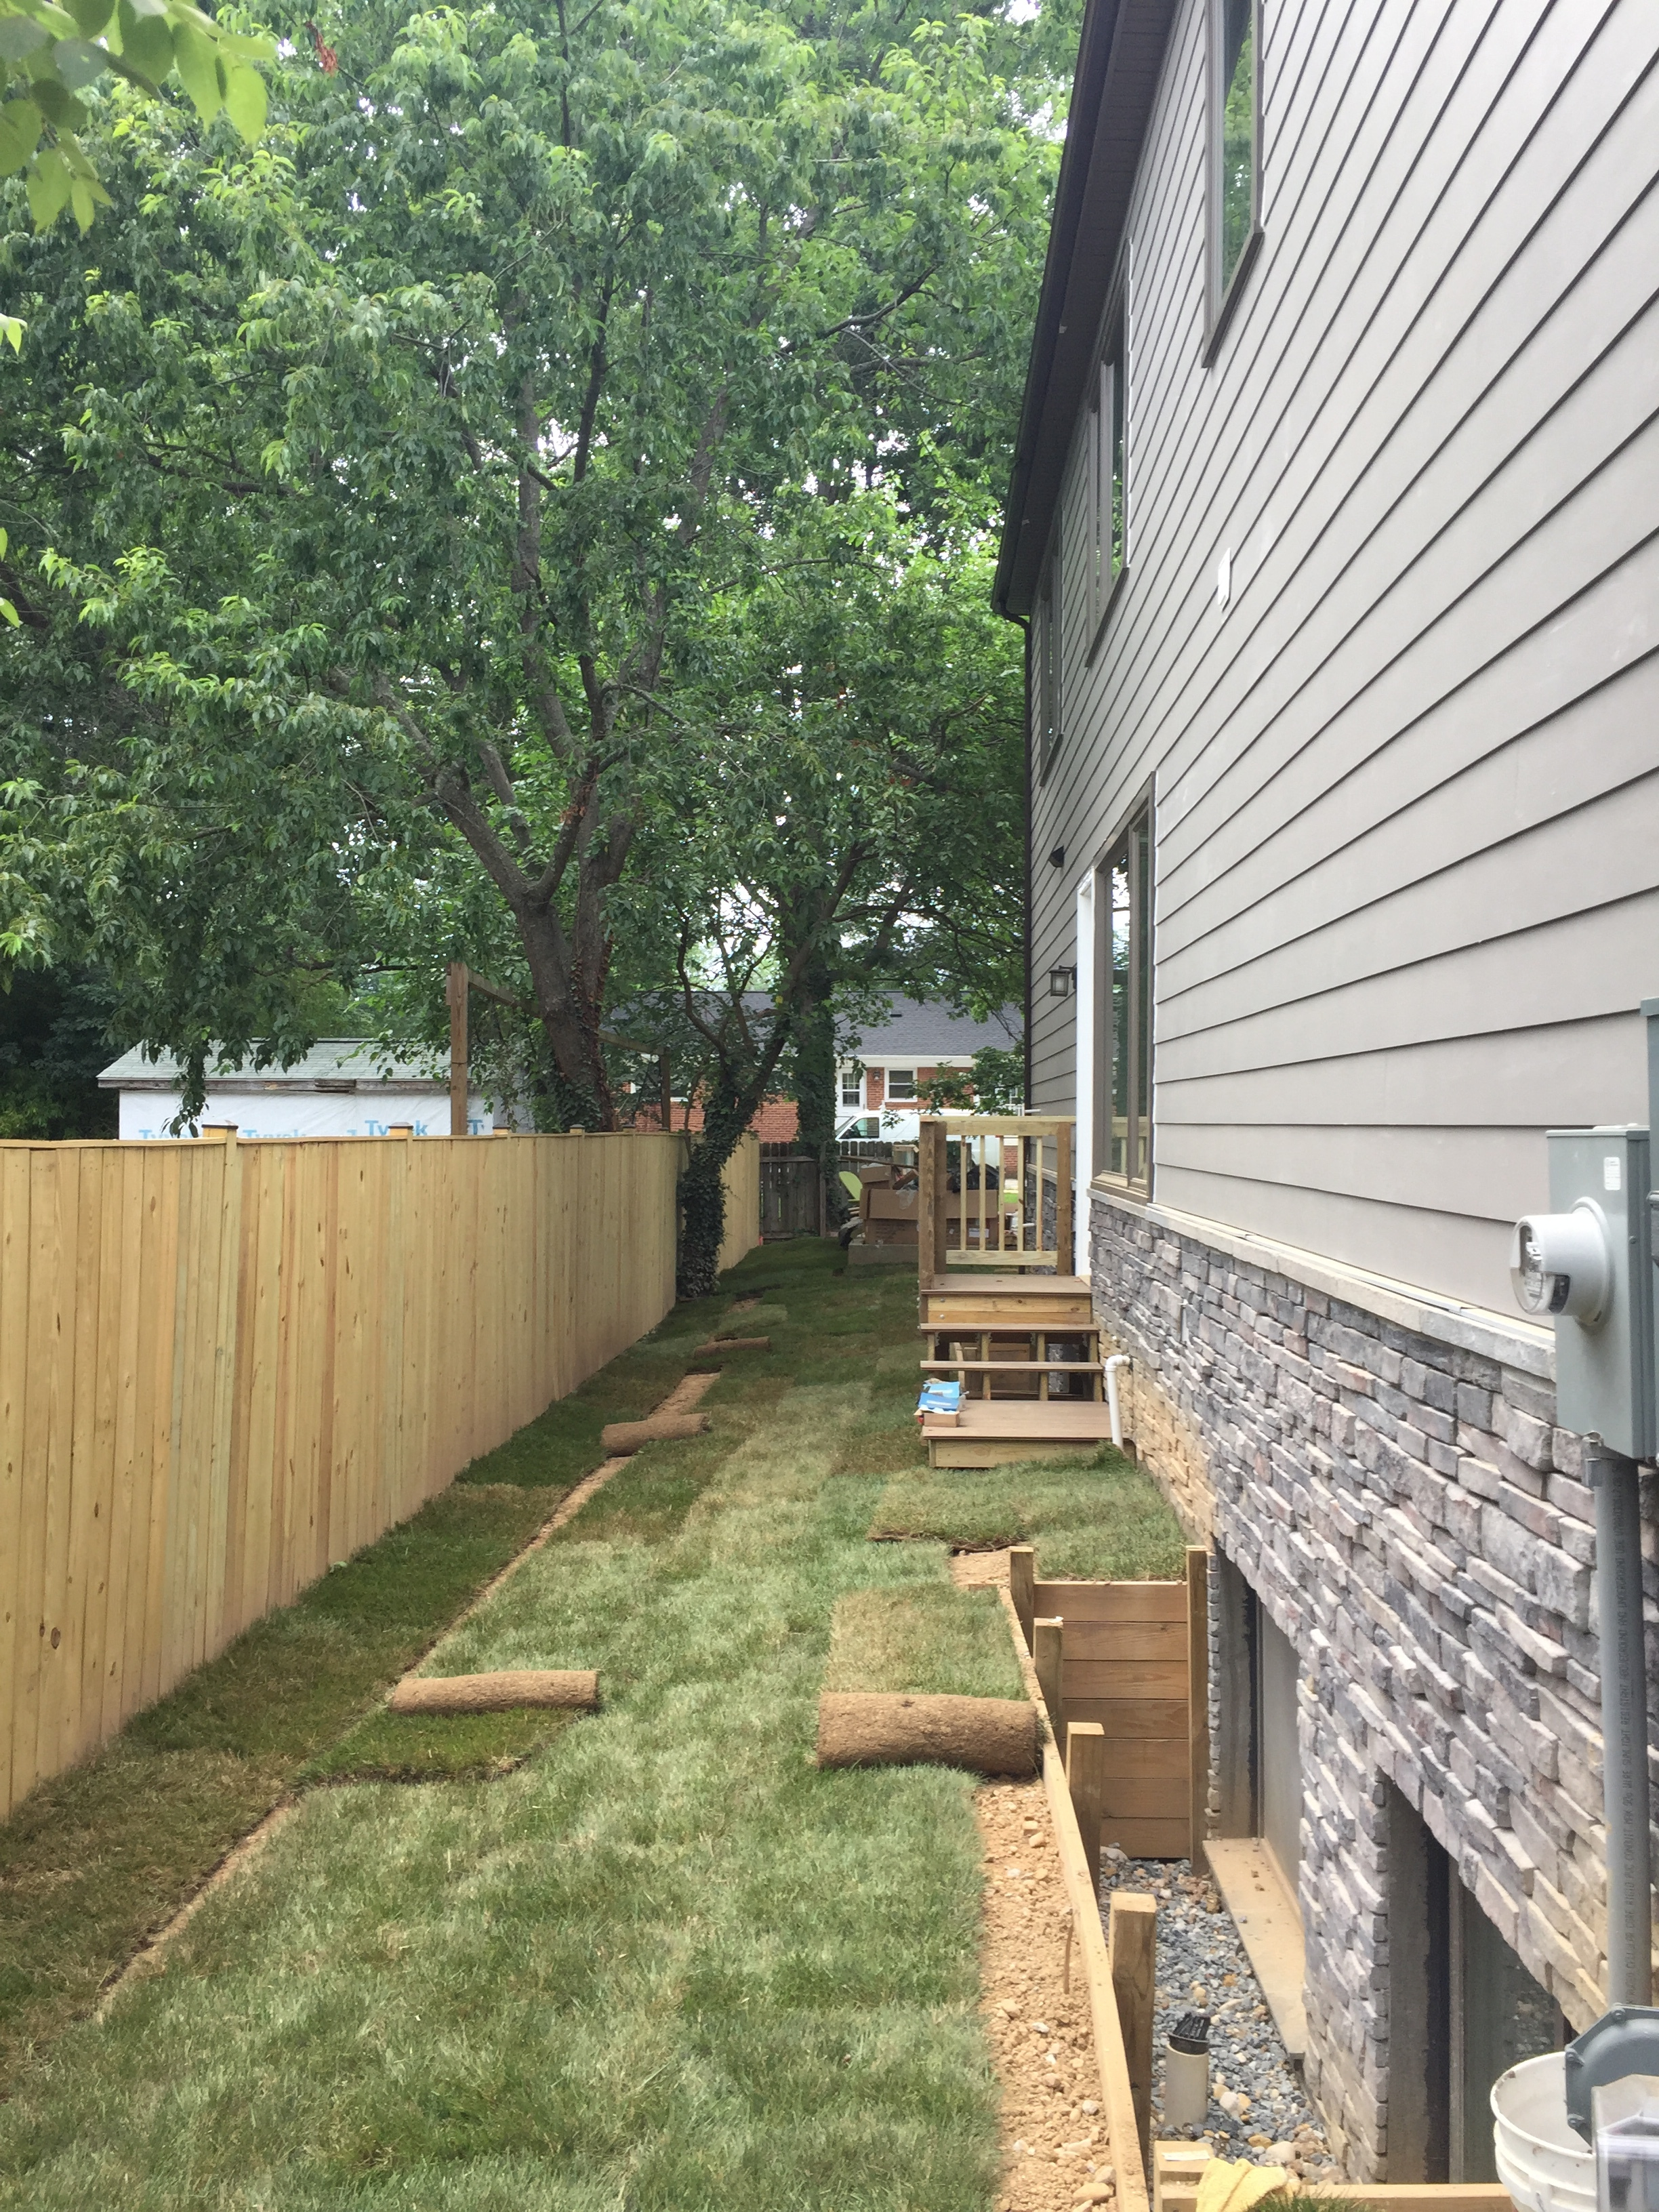 Sod being installed along the side yard. The sad part is that I have to fix the window wall retaining wall so I will have to rip up some grass and replace some wood. Lesson learned.